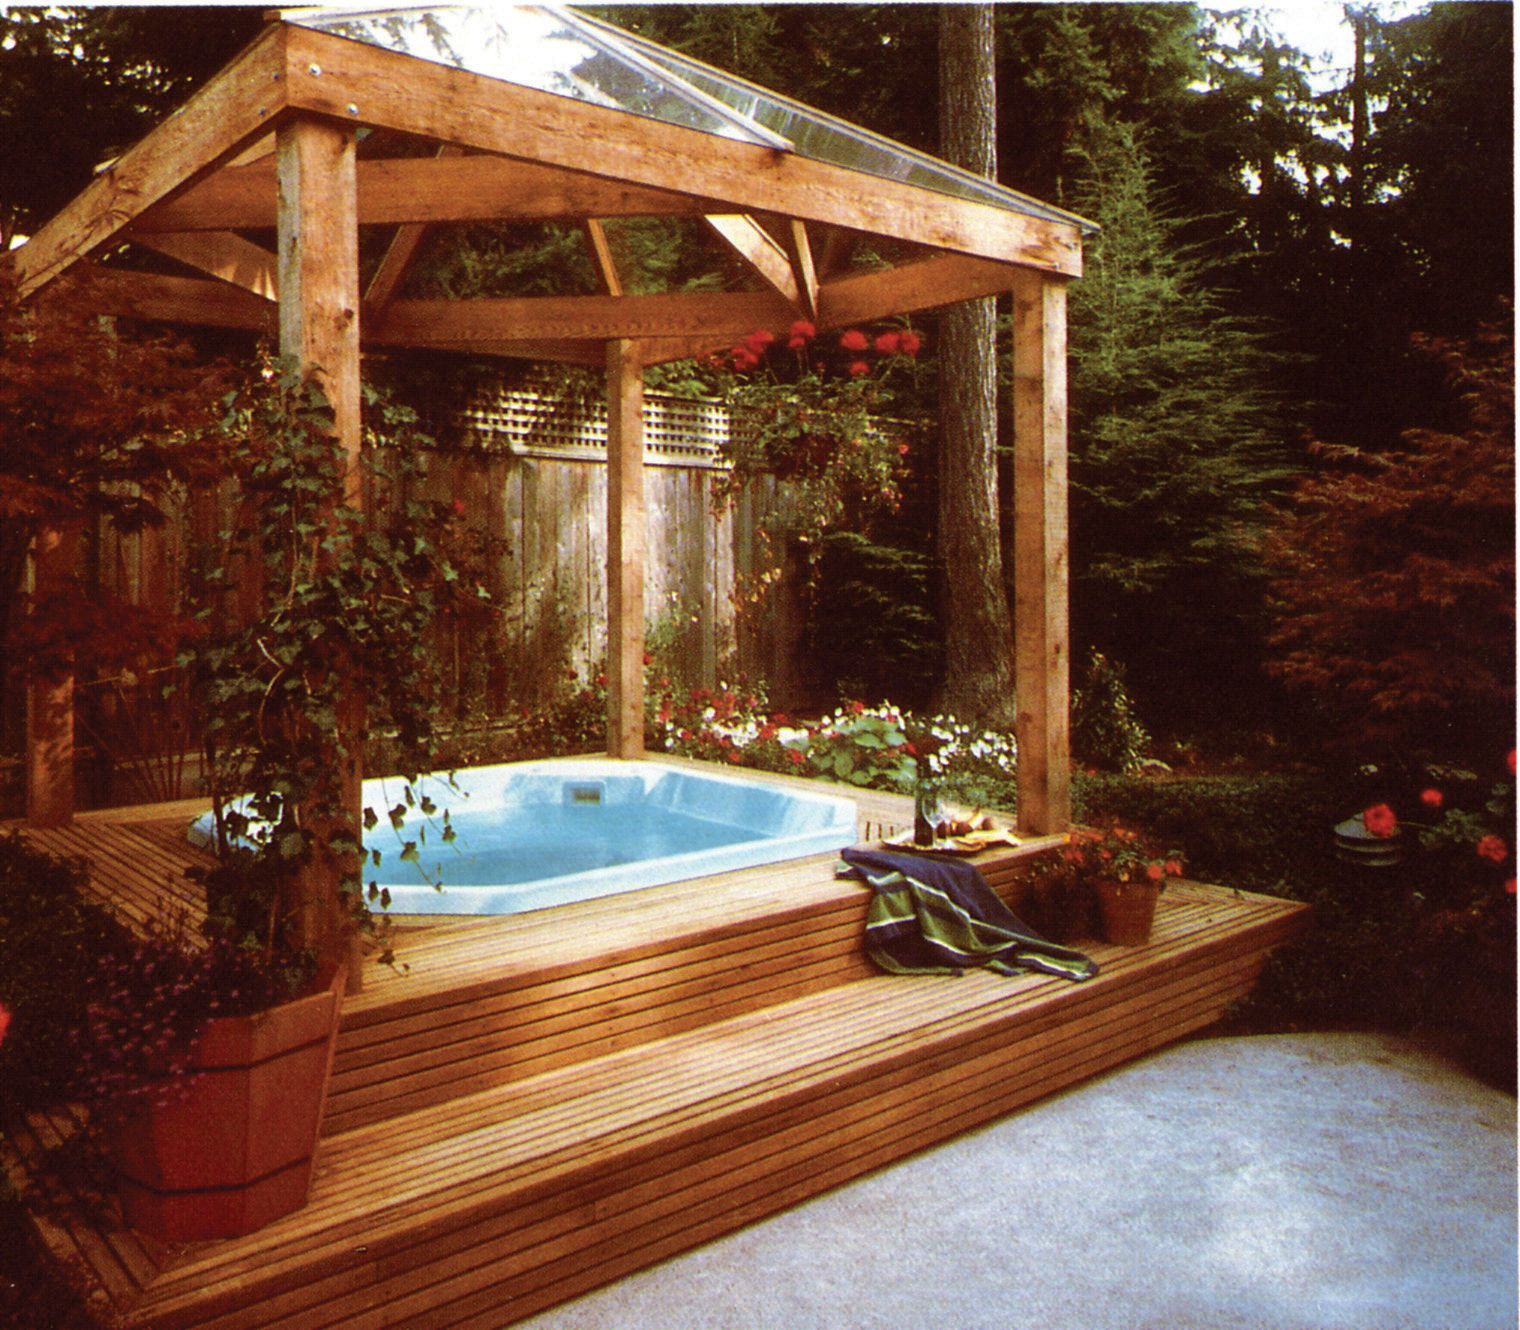 Hot Tub Sanctuary Looks Inviting I Am Just Thinking